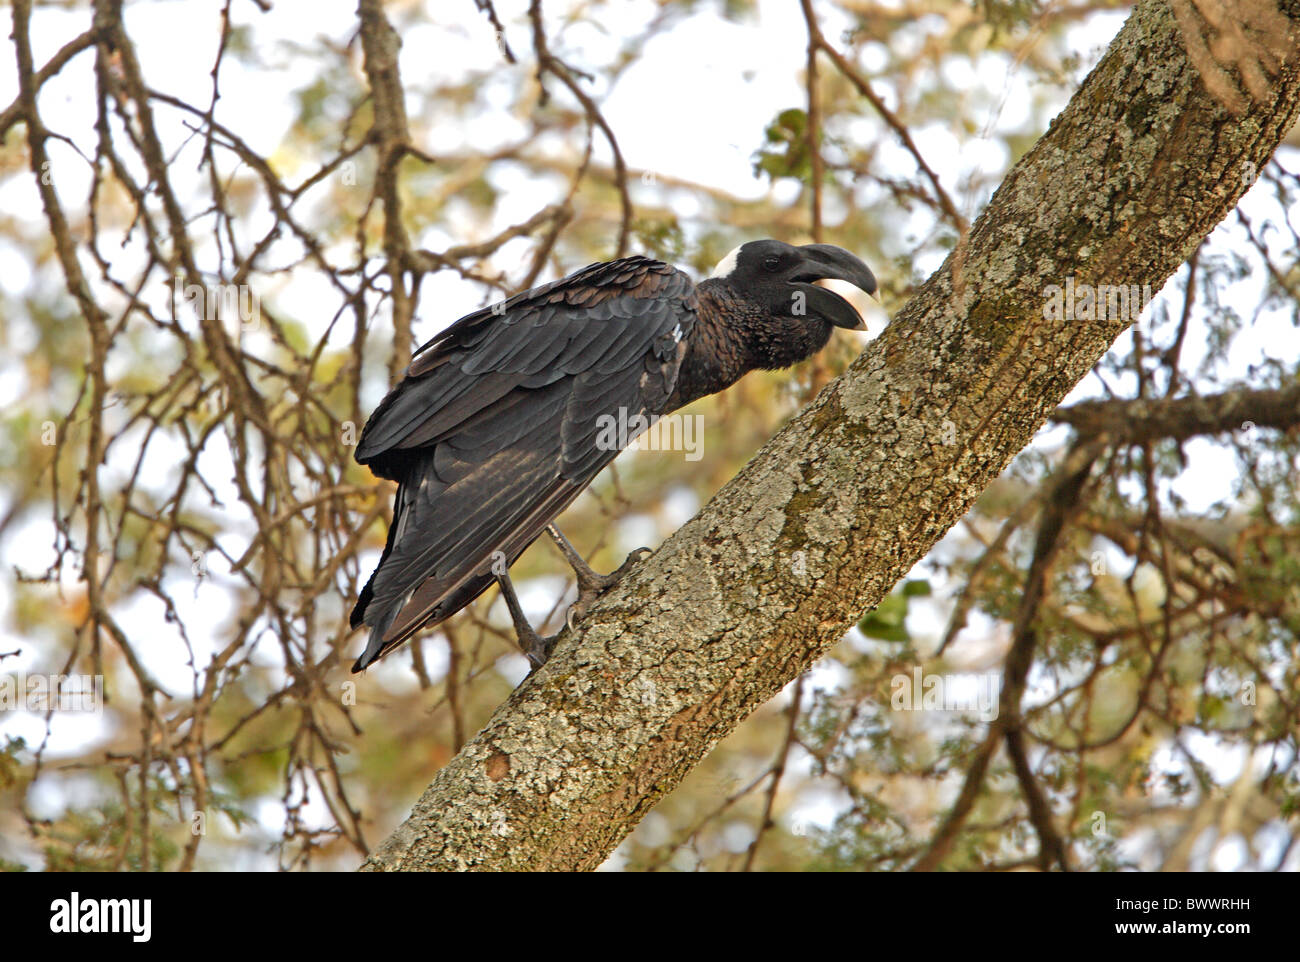 Thick-billed Raven (Corvus crassirostris) adult, calling, perched in tree, Lake Awassa, Great Rift Valley, Ethiopia, - Stock Image